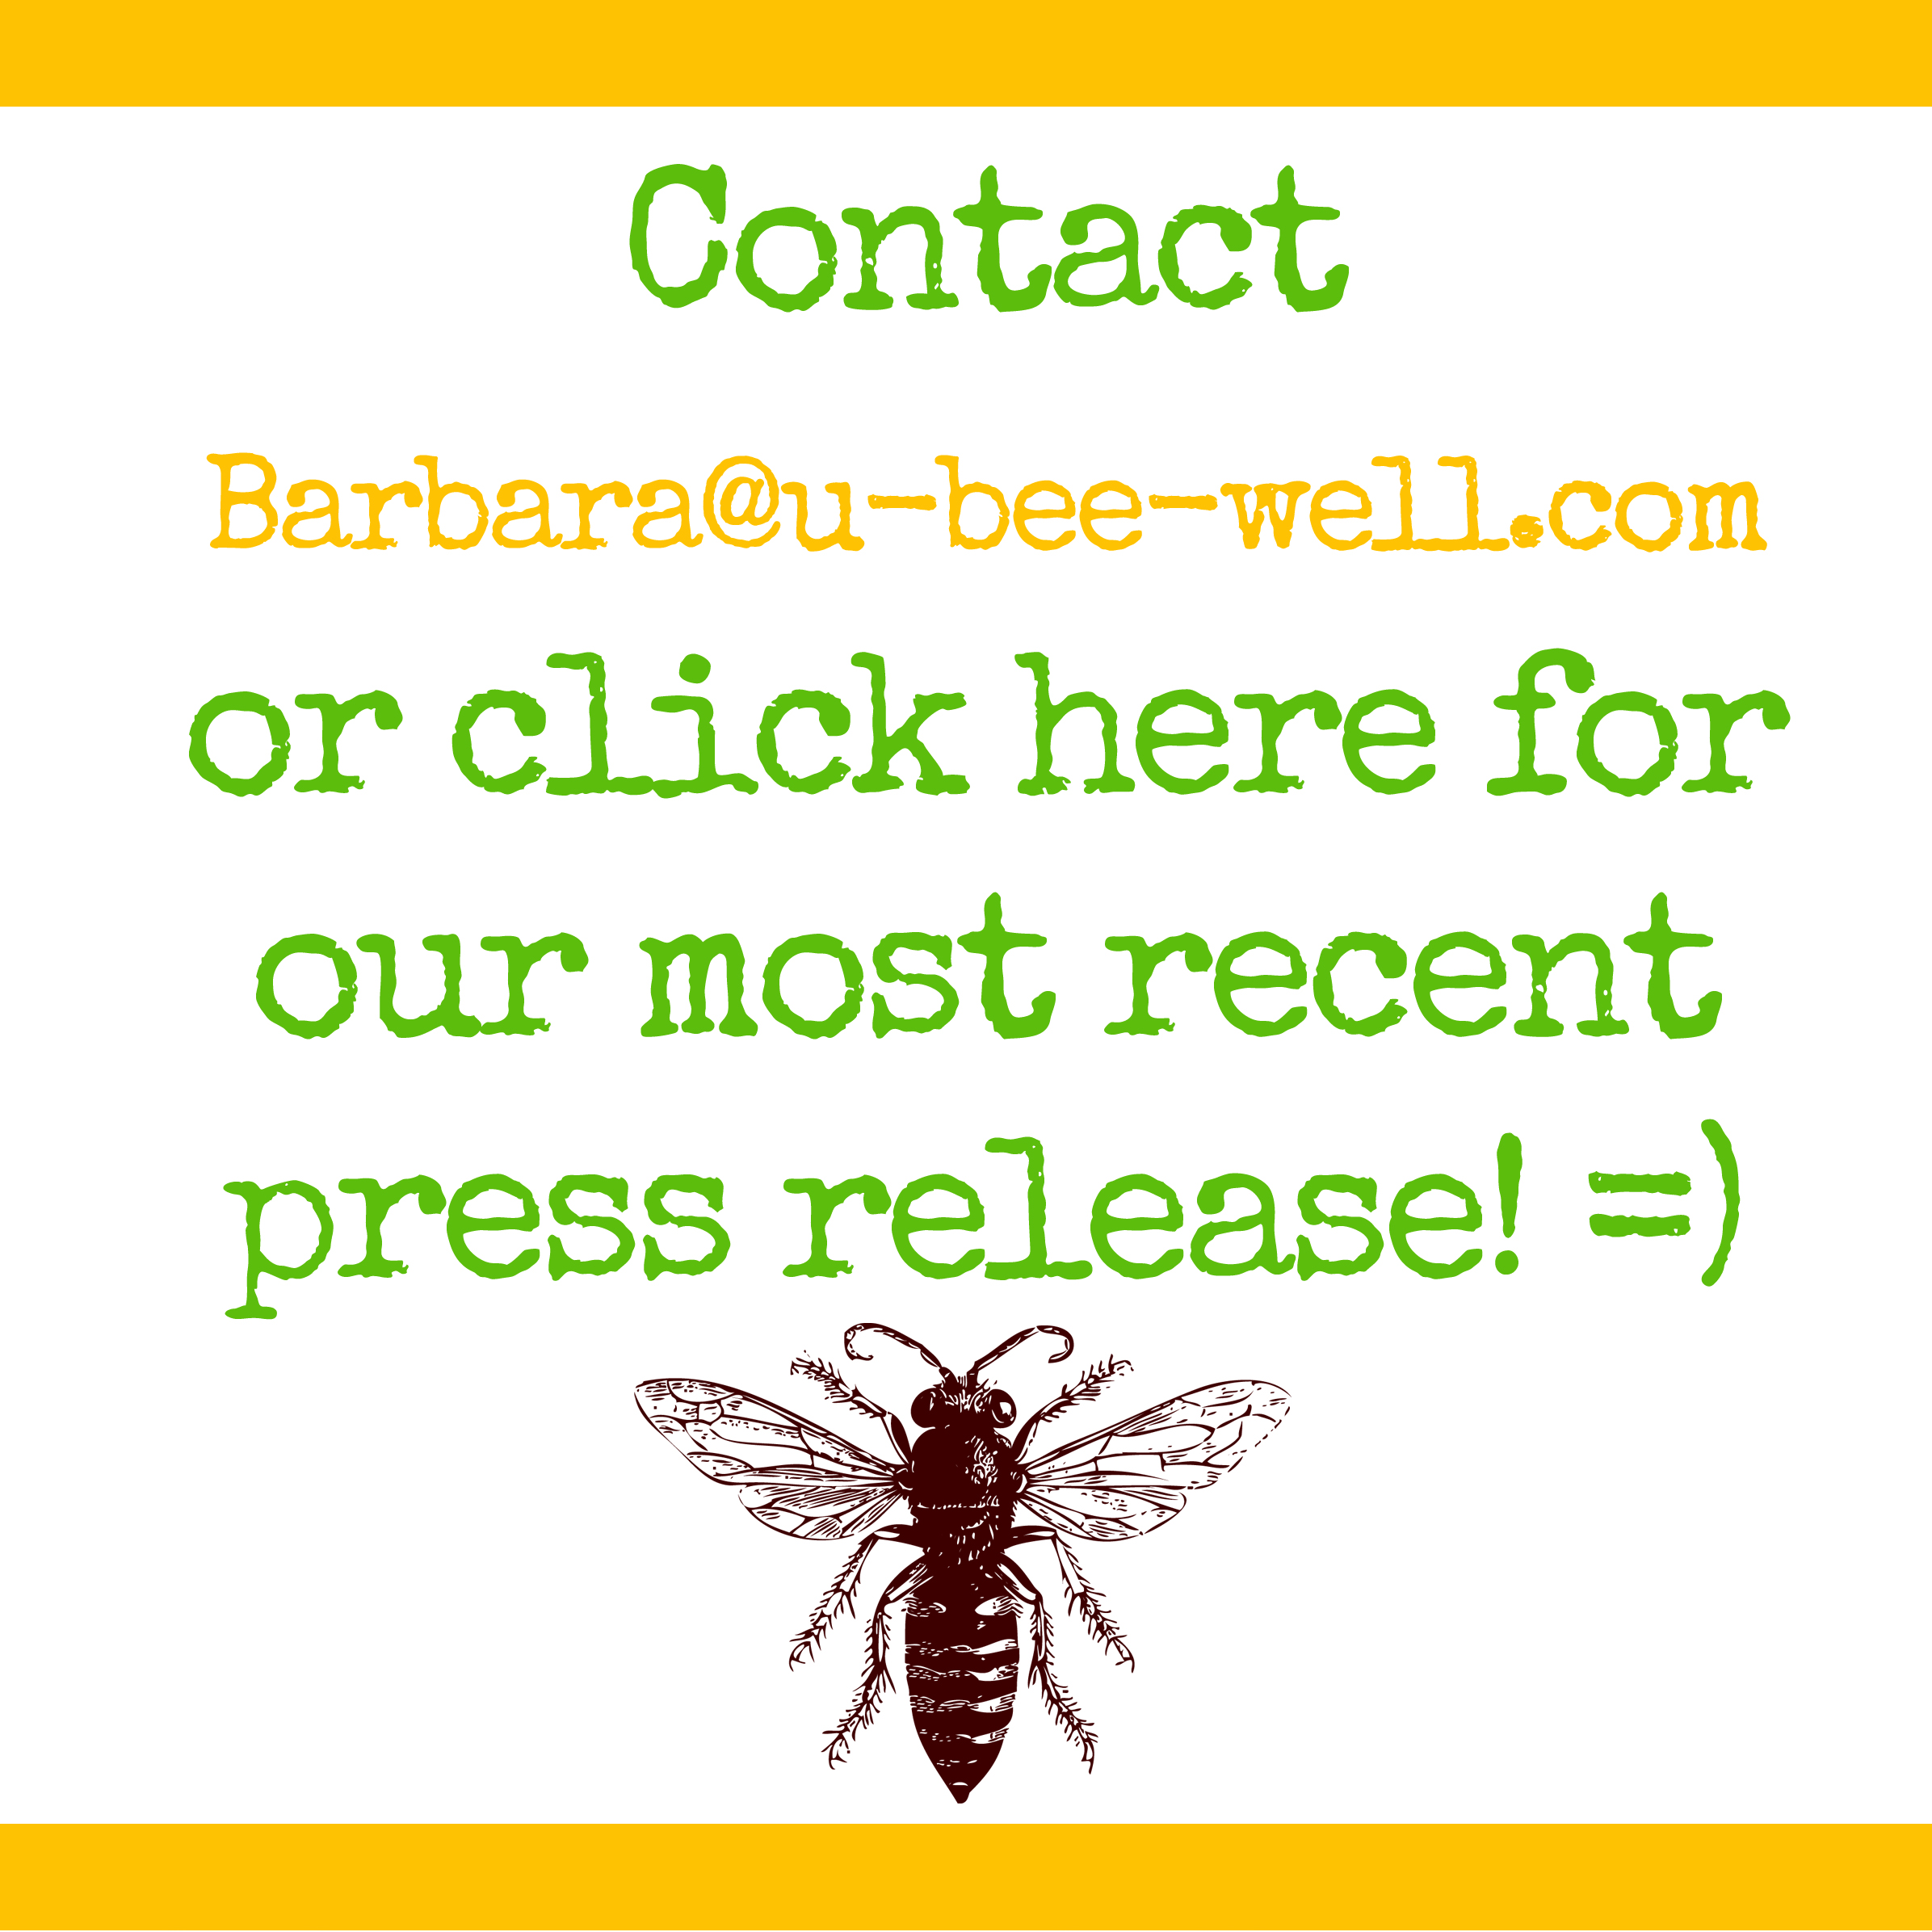 Press Release   Contact  Barbara@u-bee-well.com  or download our most recent version about how we're saving Philadelphia's Queen Bees  here!